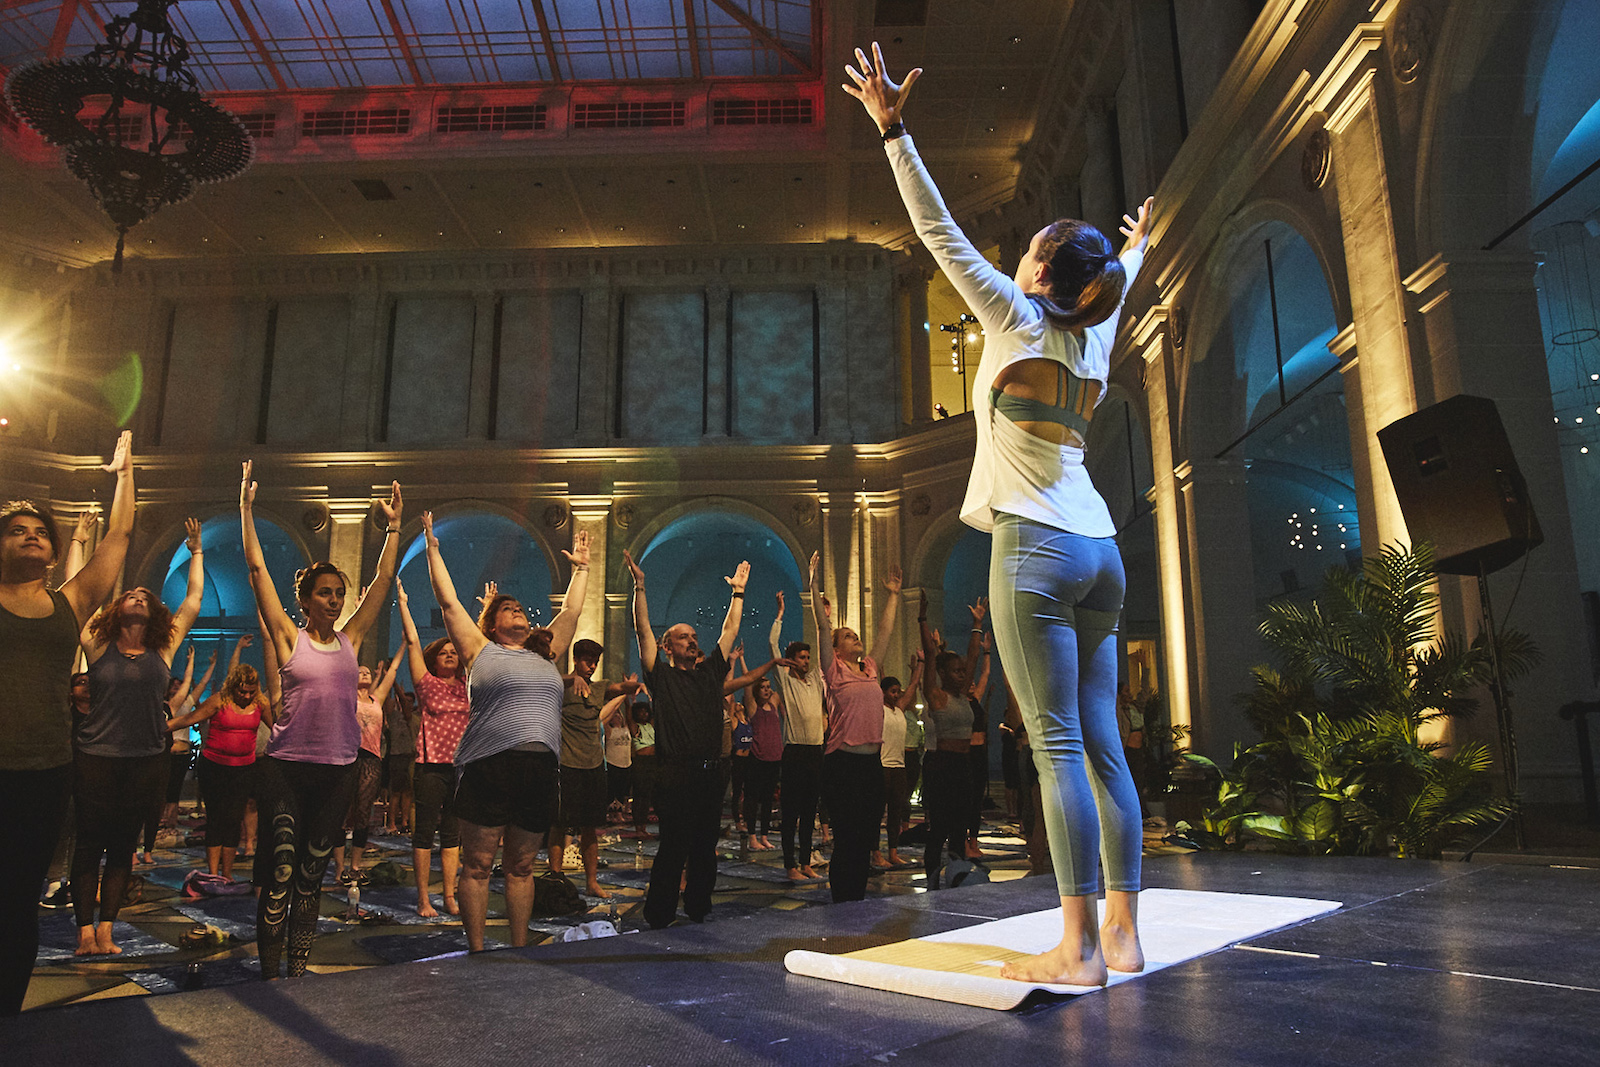 People stand with arms raised as they do yoga together, led by an instructor, in the Brooklyn Museum.